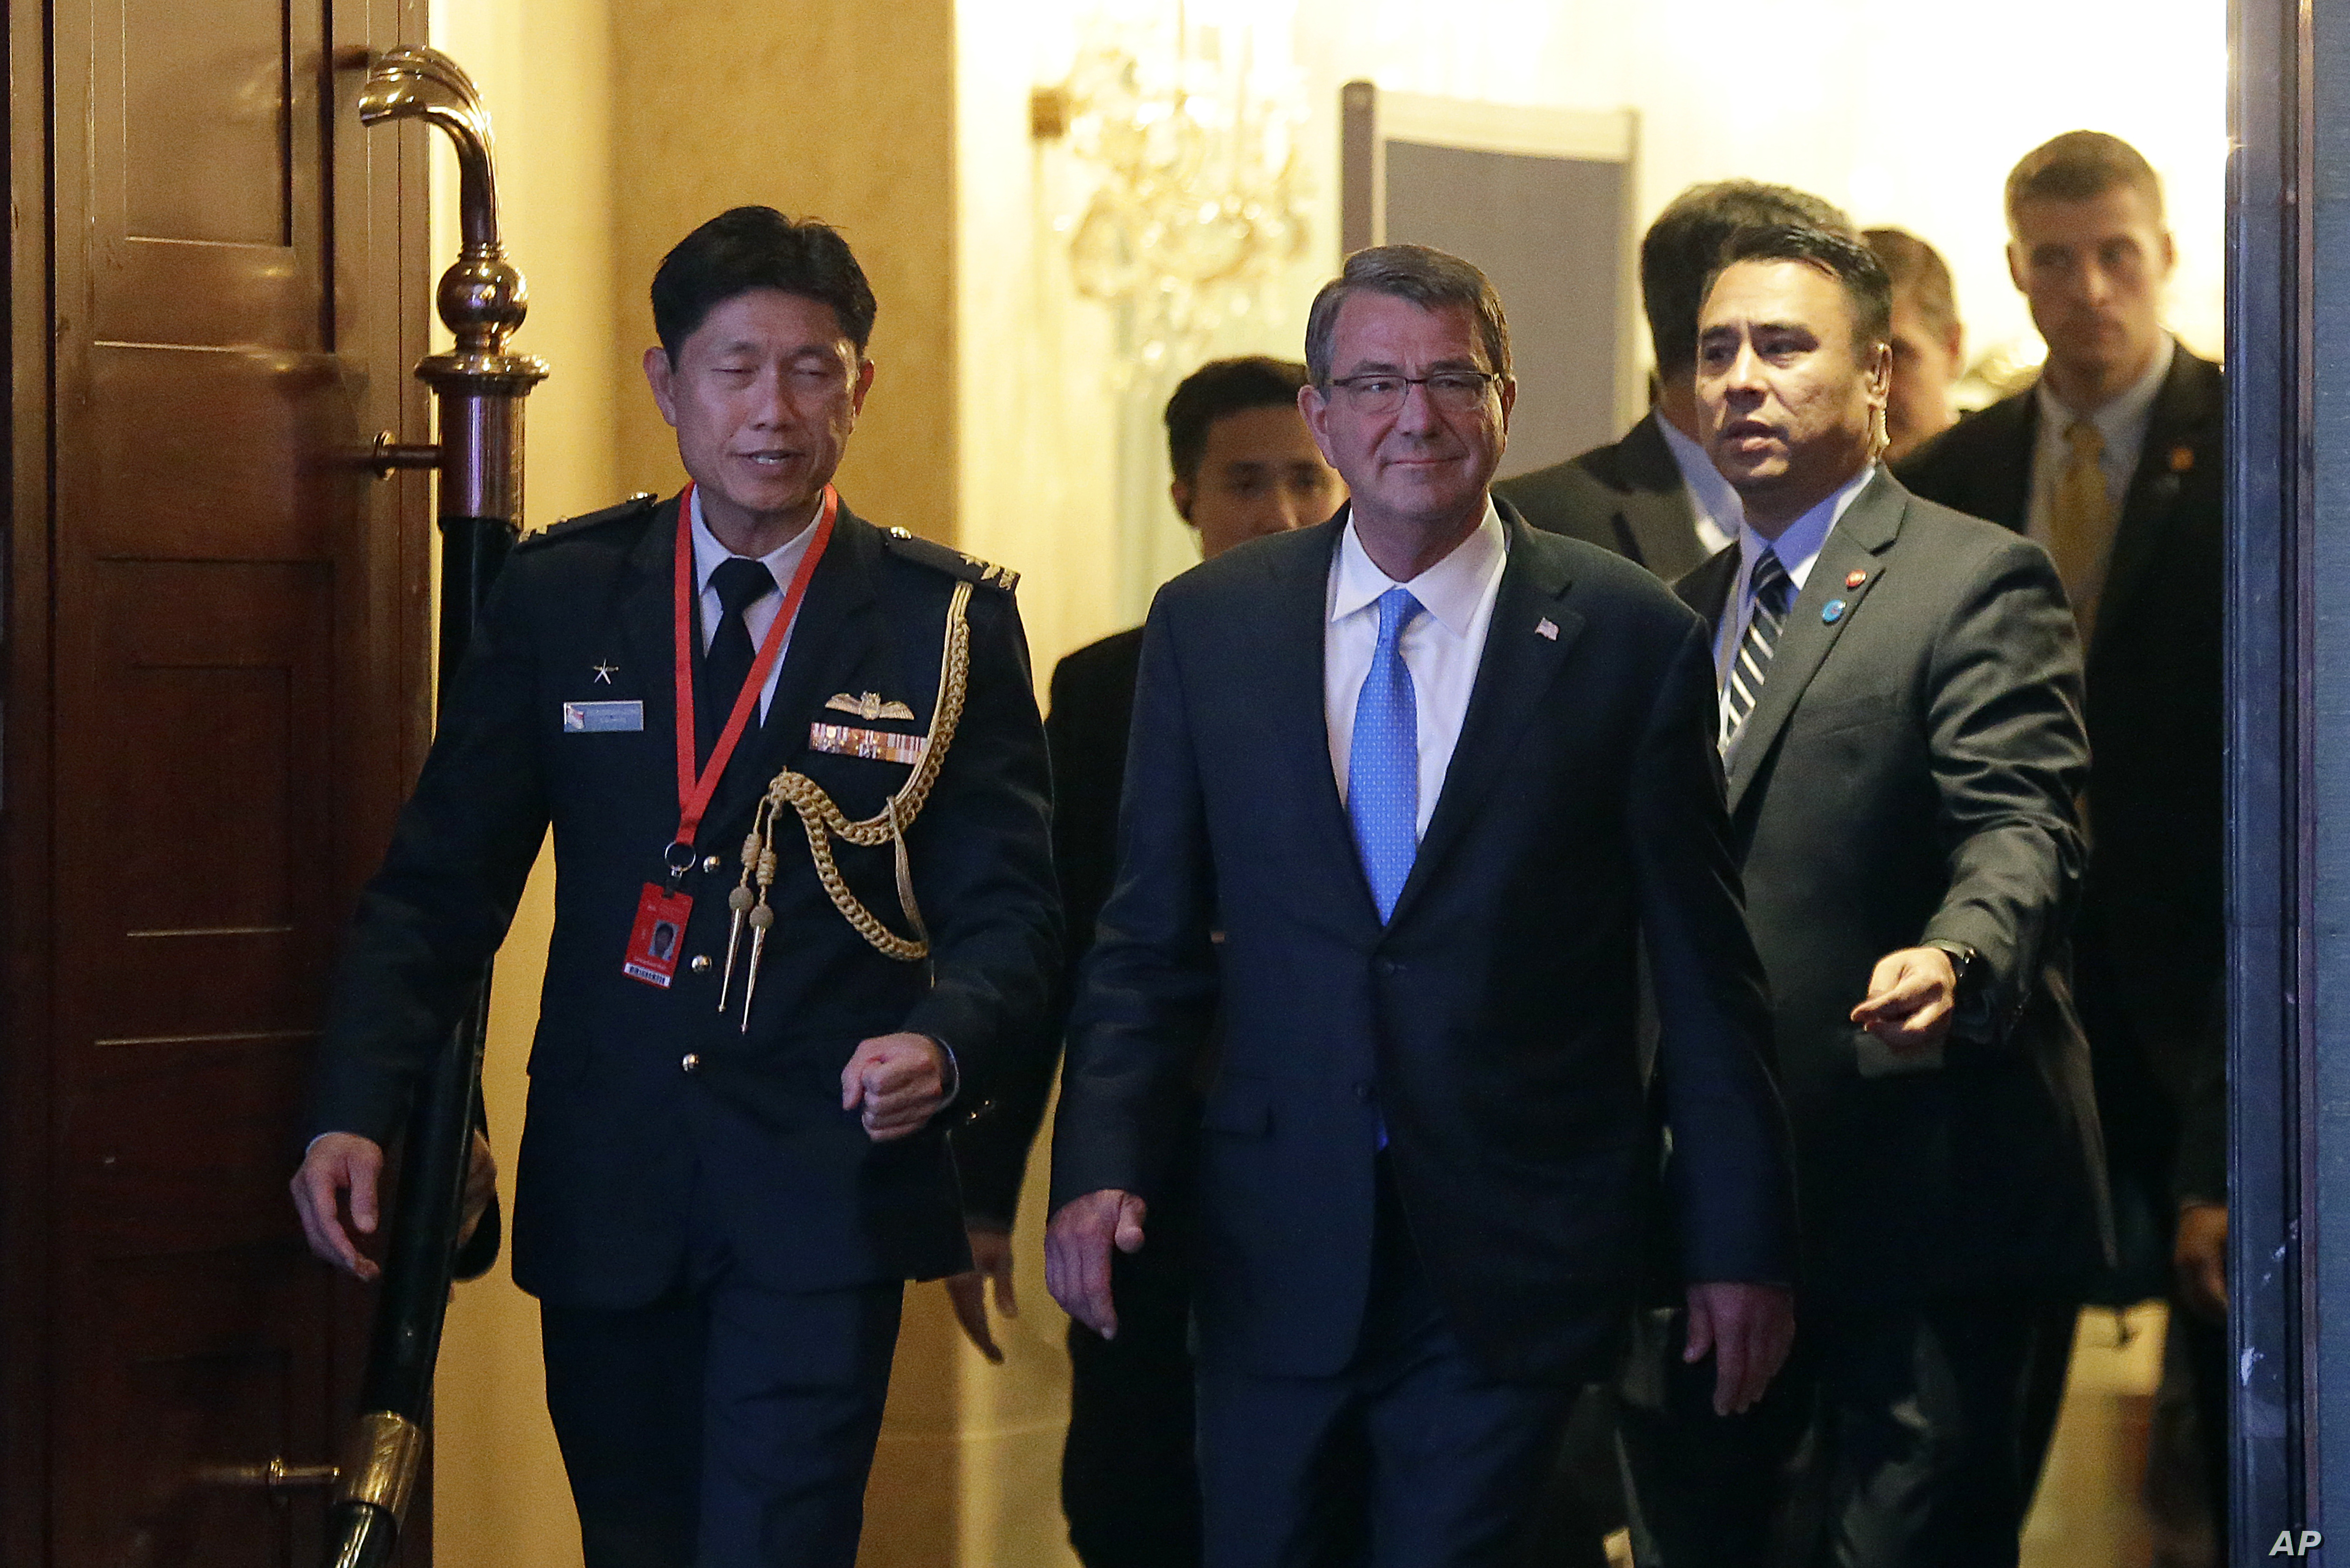 U.S. Defense Secretary Ash Carter arrives for the Opening Dinner of the 15th International Institute for Strategic Studies Shangri-la Dialogue, or IISS, Asia Security Summit on Friday, June 3, 2016, in Singapore.